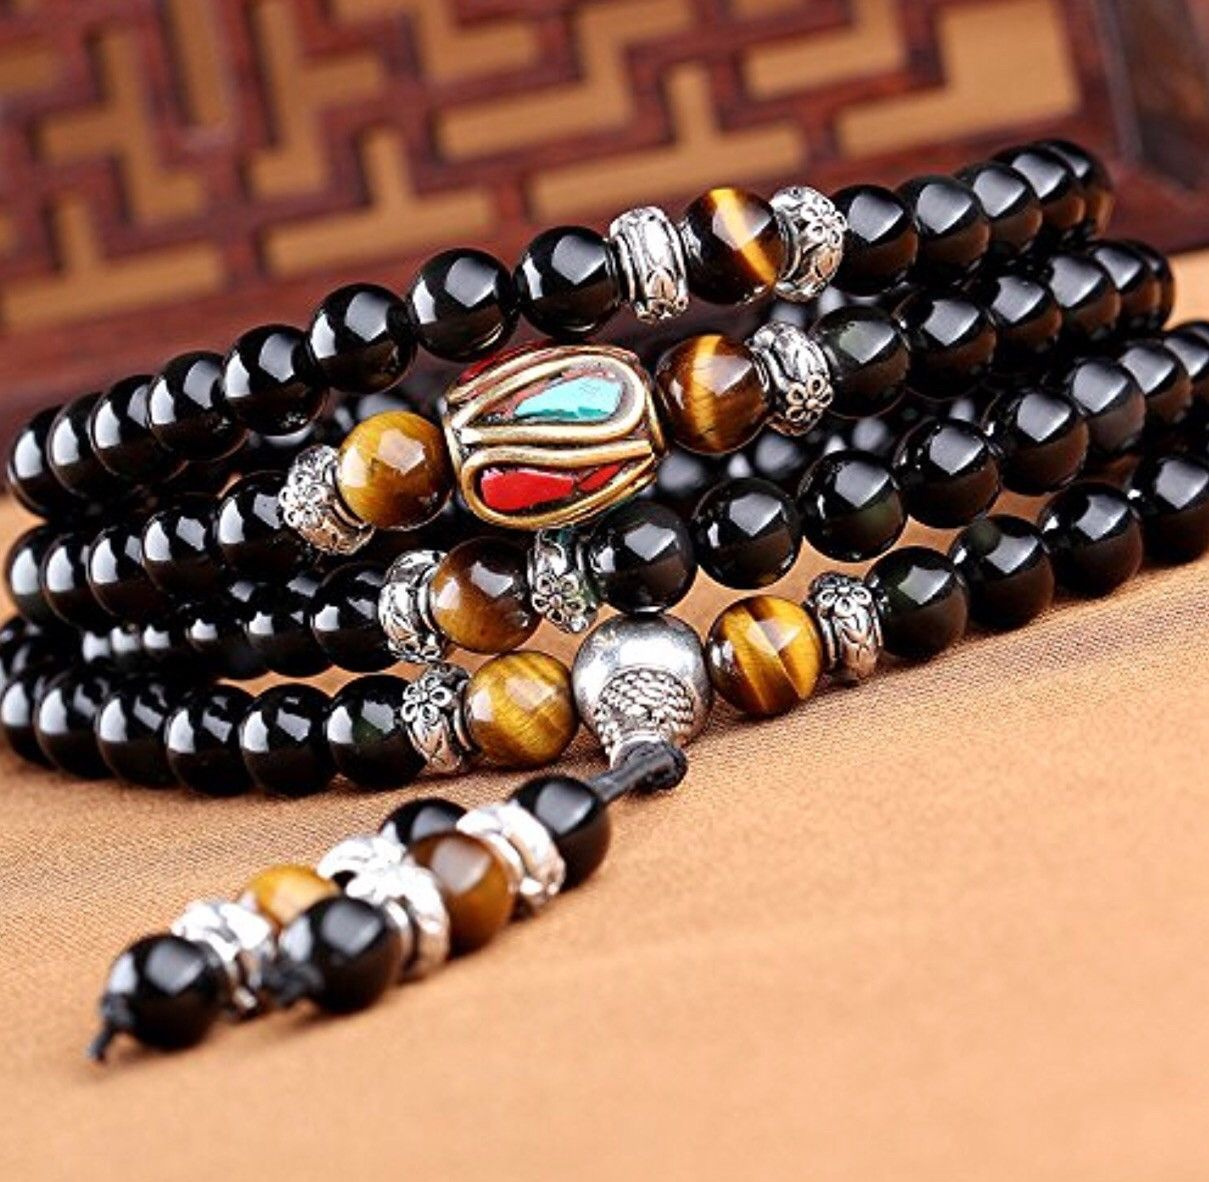 Tiger eye and obsidian malas prayer beads bracelet products